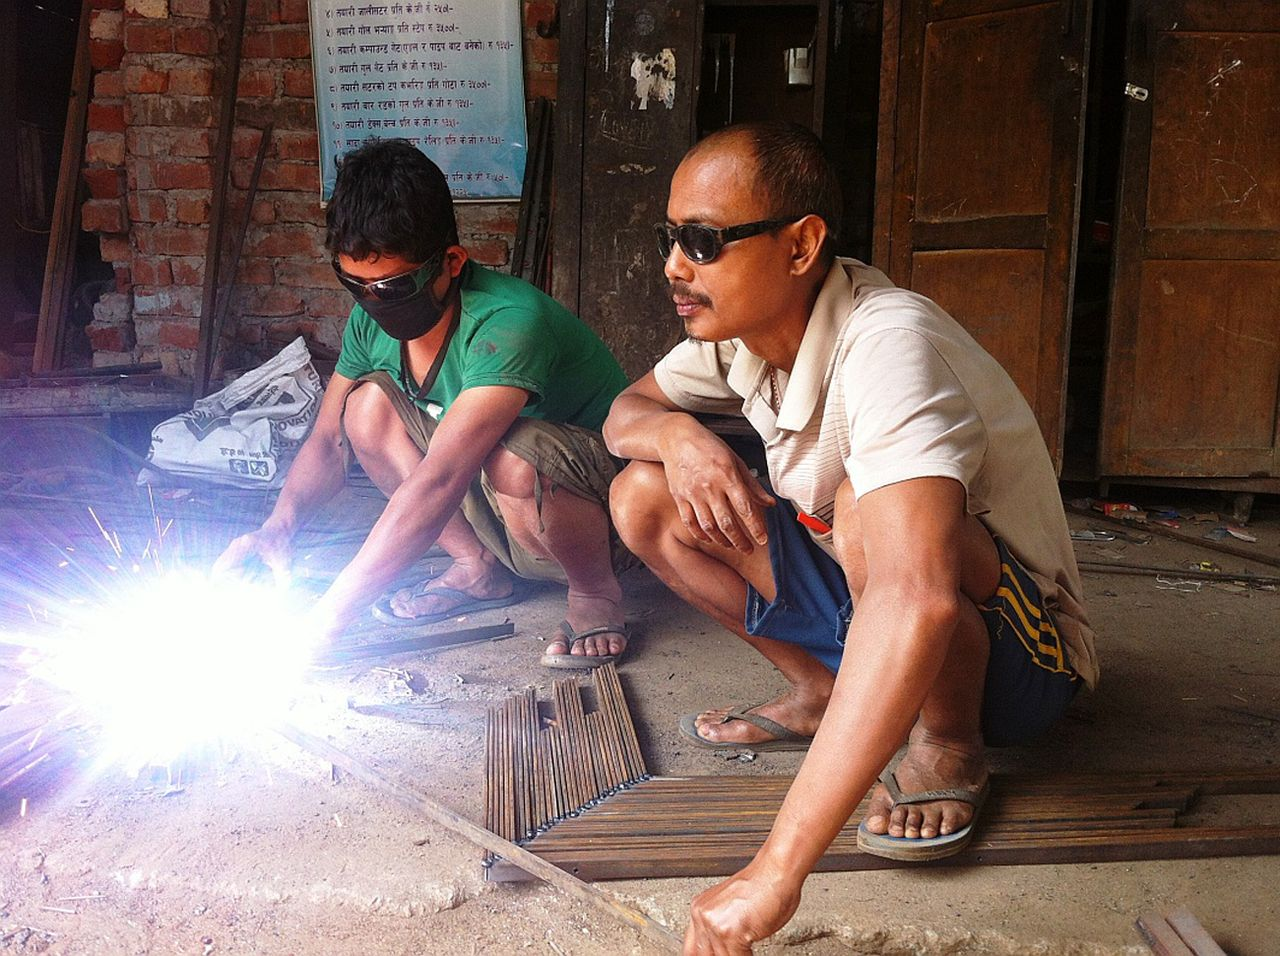 Awareness Occupational Hazards And Use Safety Measures Among Welders Cross Sectional